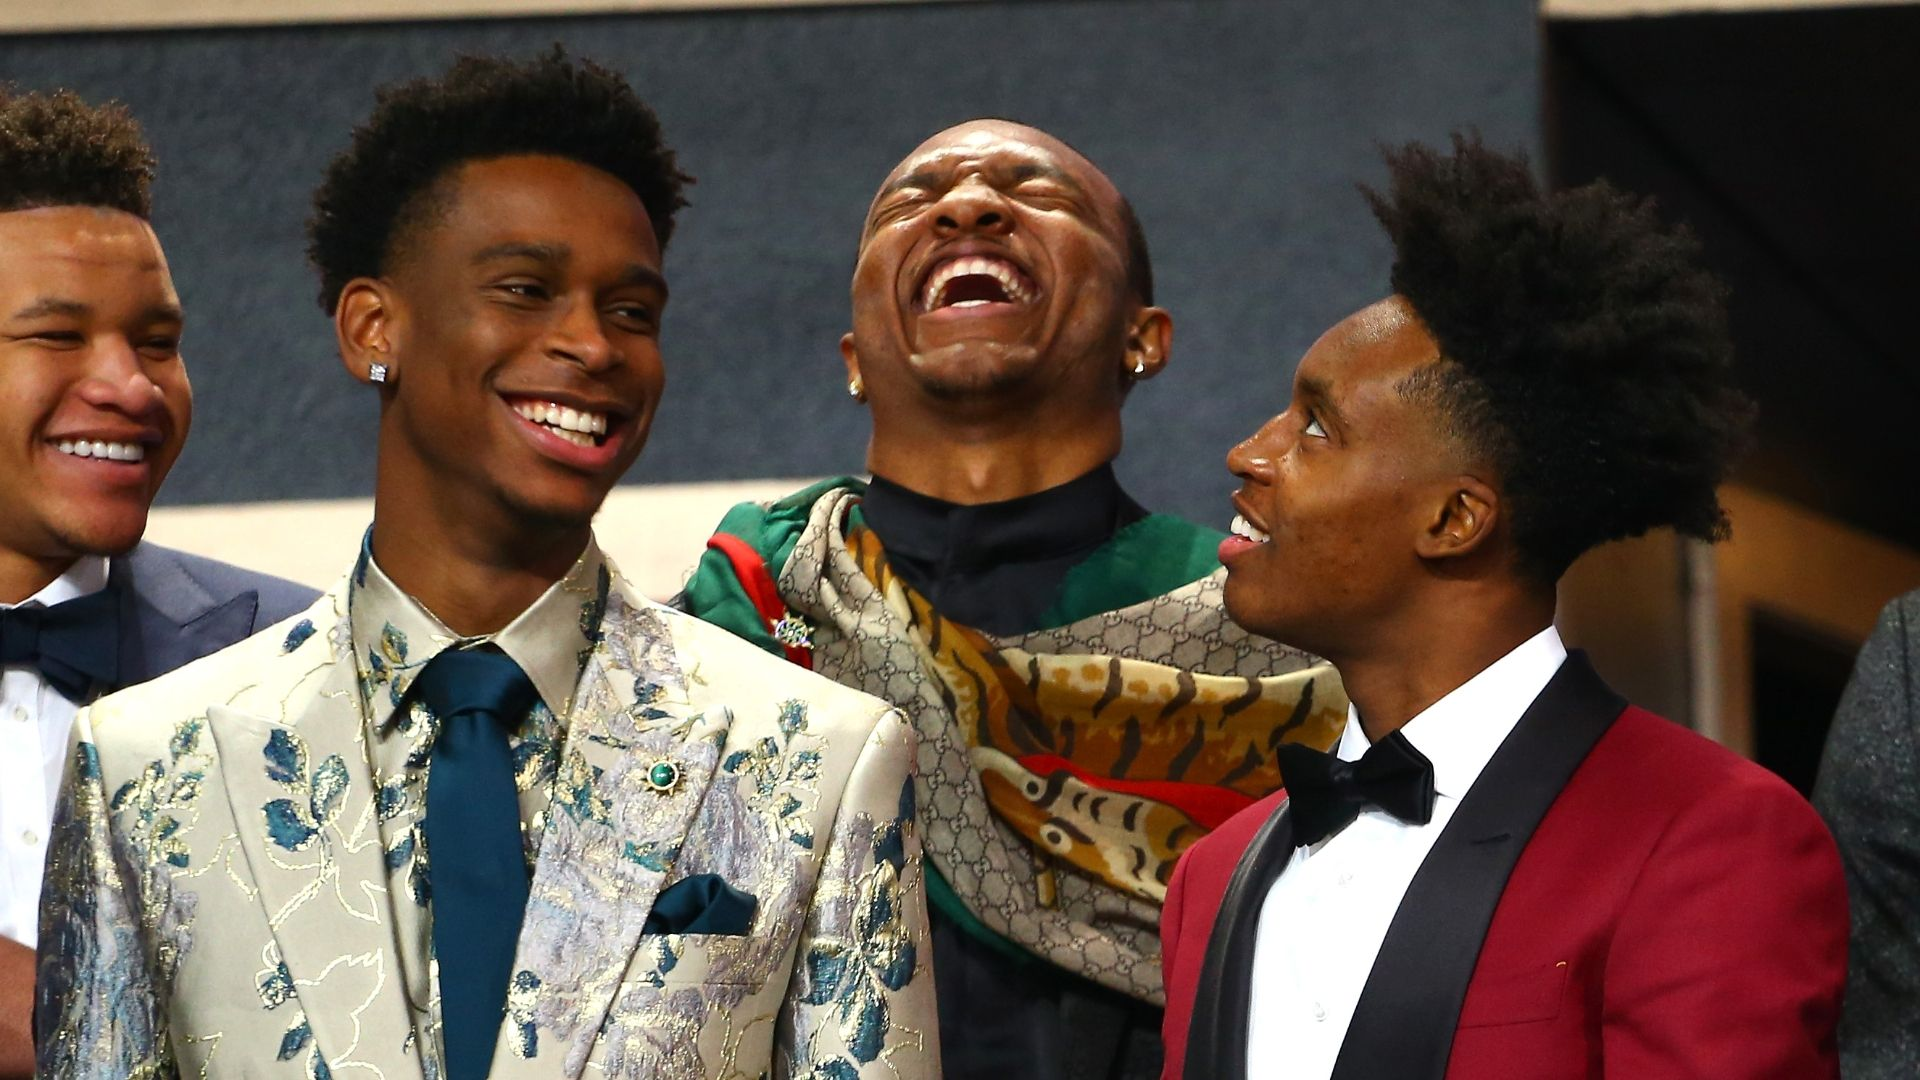 Gilgeous-Alexander, top prospects show off outfits before draft